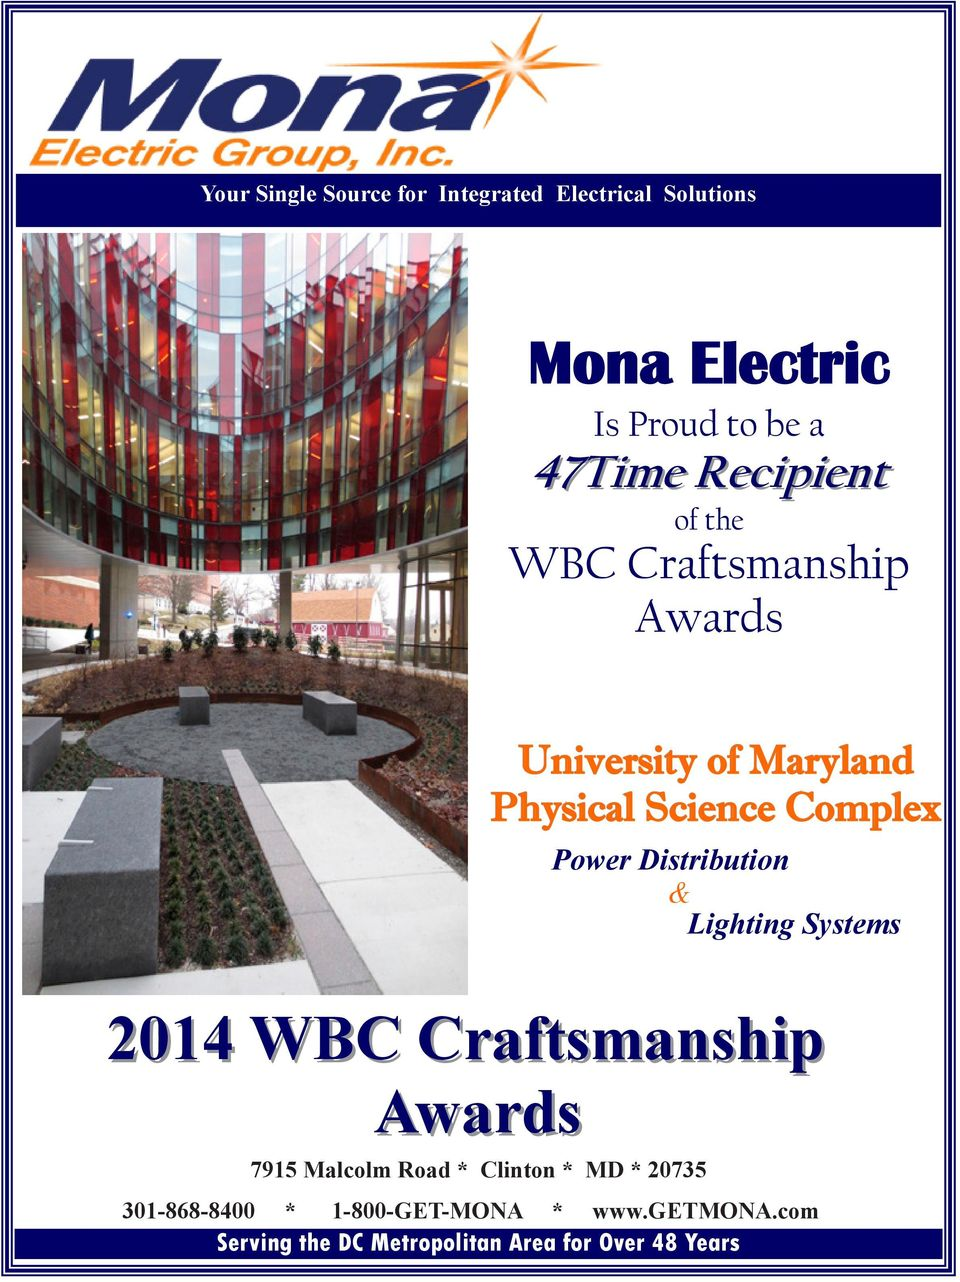 Distribution & Lighting Systems 2014 WBC Craftsmanship Awards 7915 Malcolm Road * Clinton * MD *